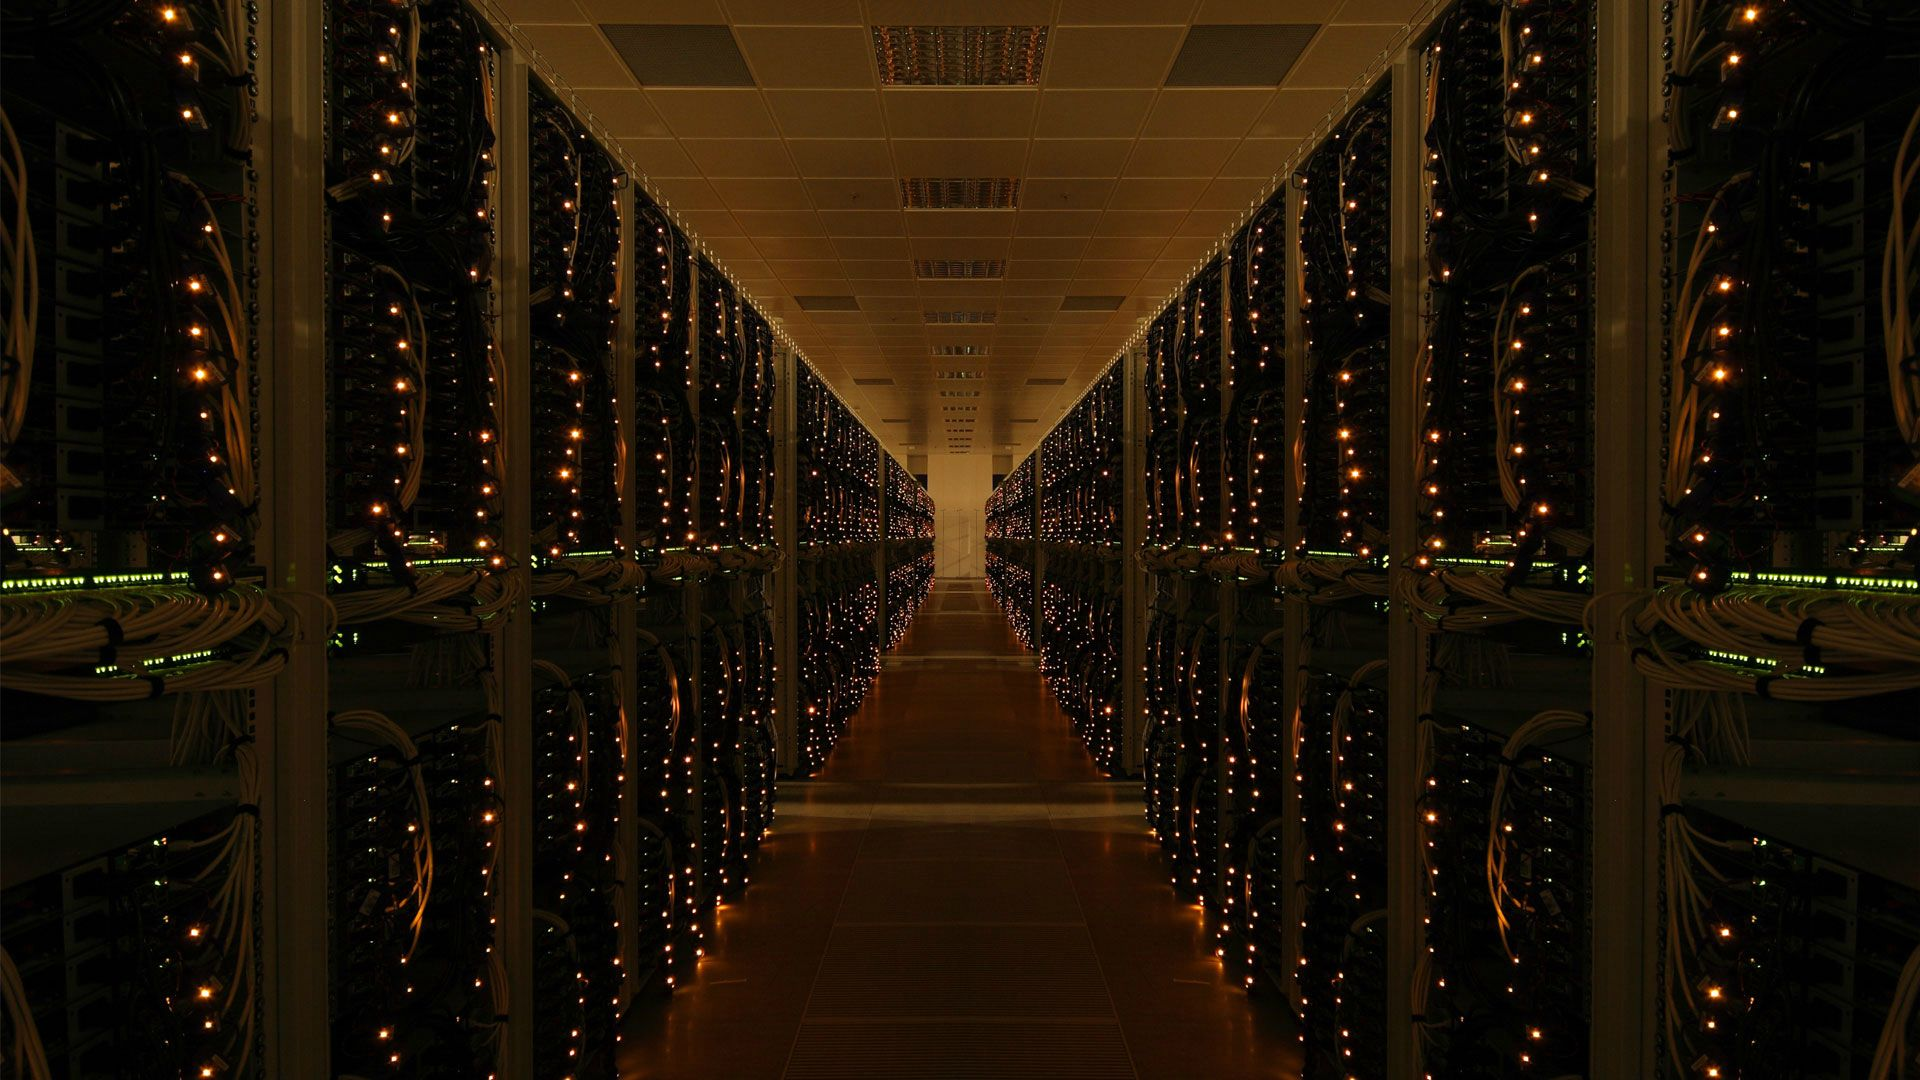 server room wallpaper background